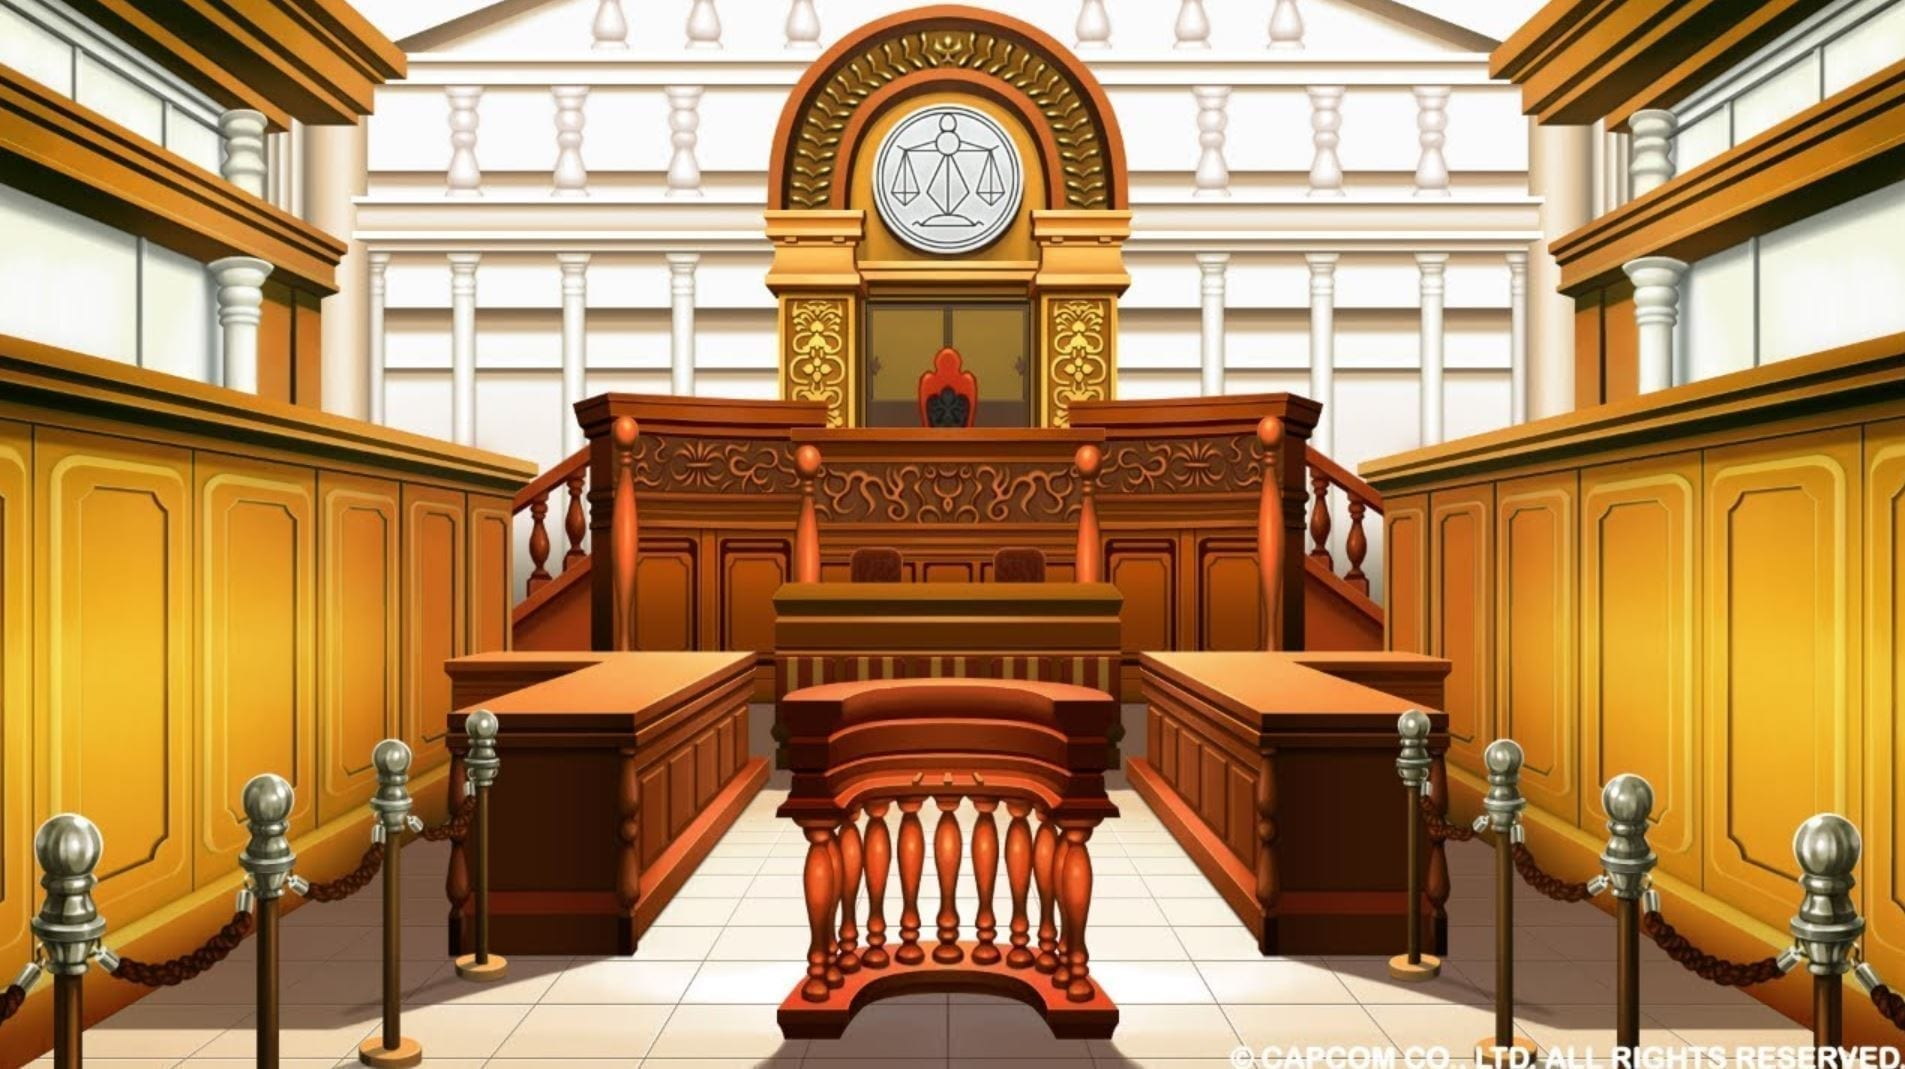 AceAttorneyCourtroom